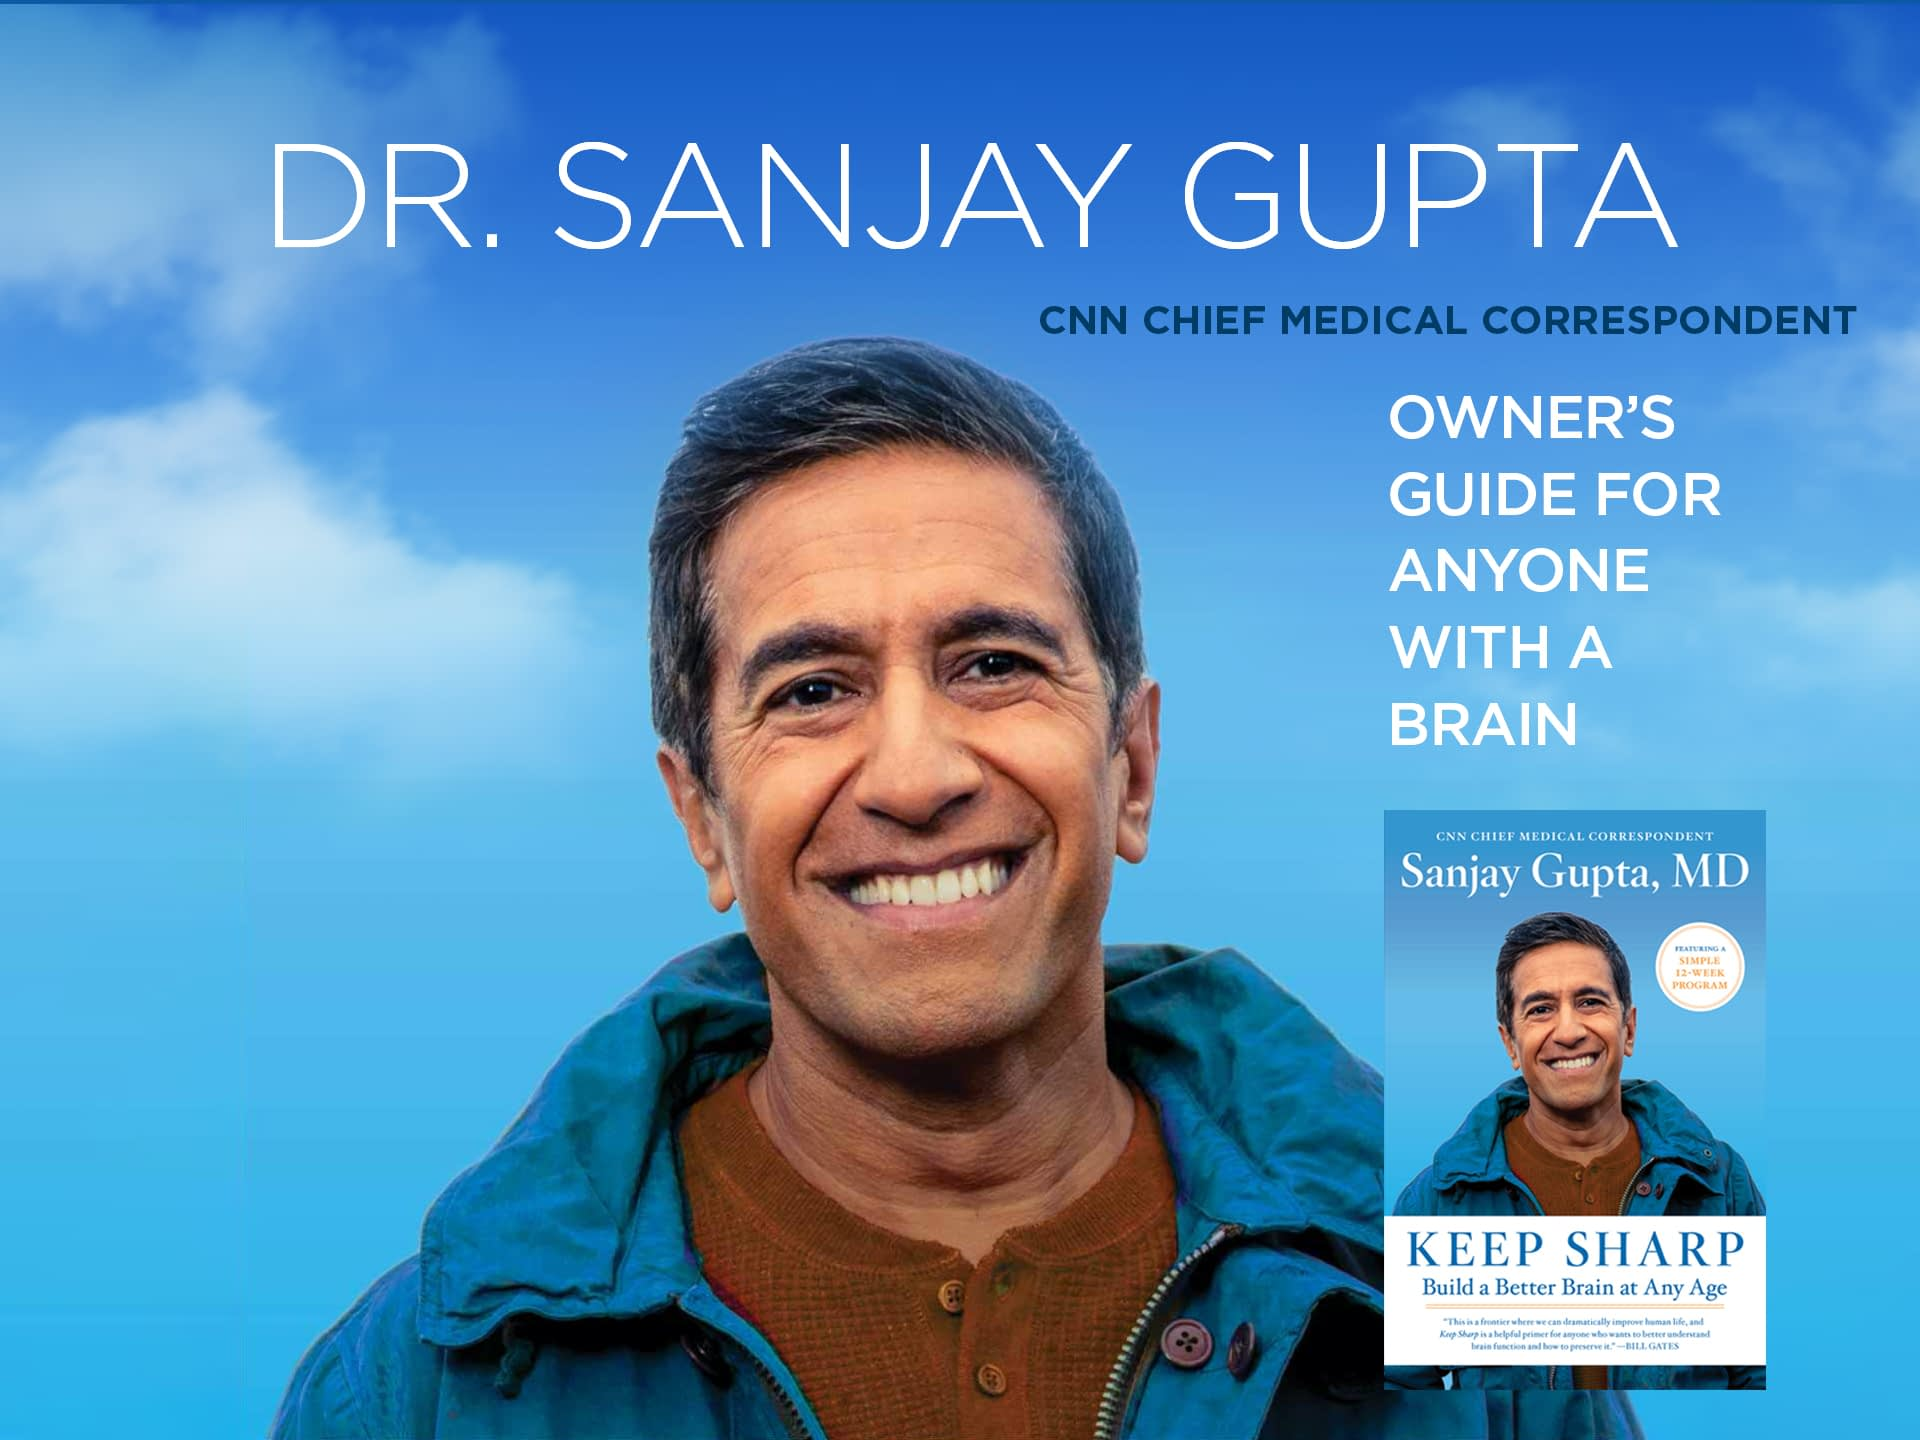 Dr. Sanjay Gupta - Keep Sharp: How To Build a Better Brain at Any Age - As Seen in The Daily Mail - Sanjay Gupta